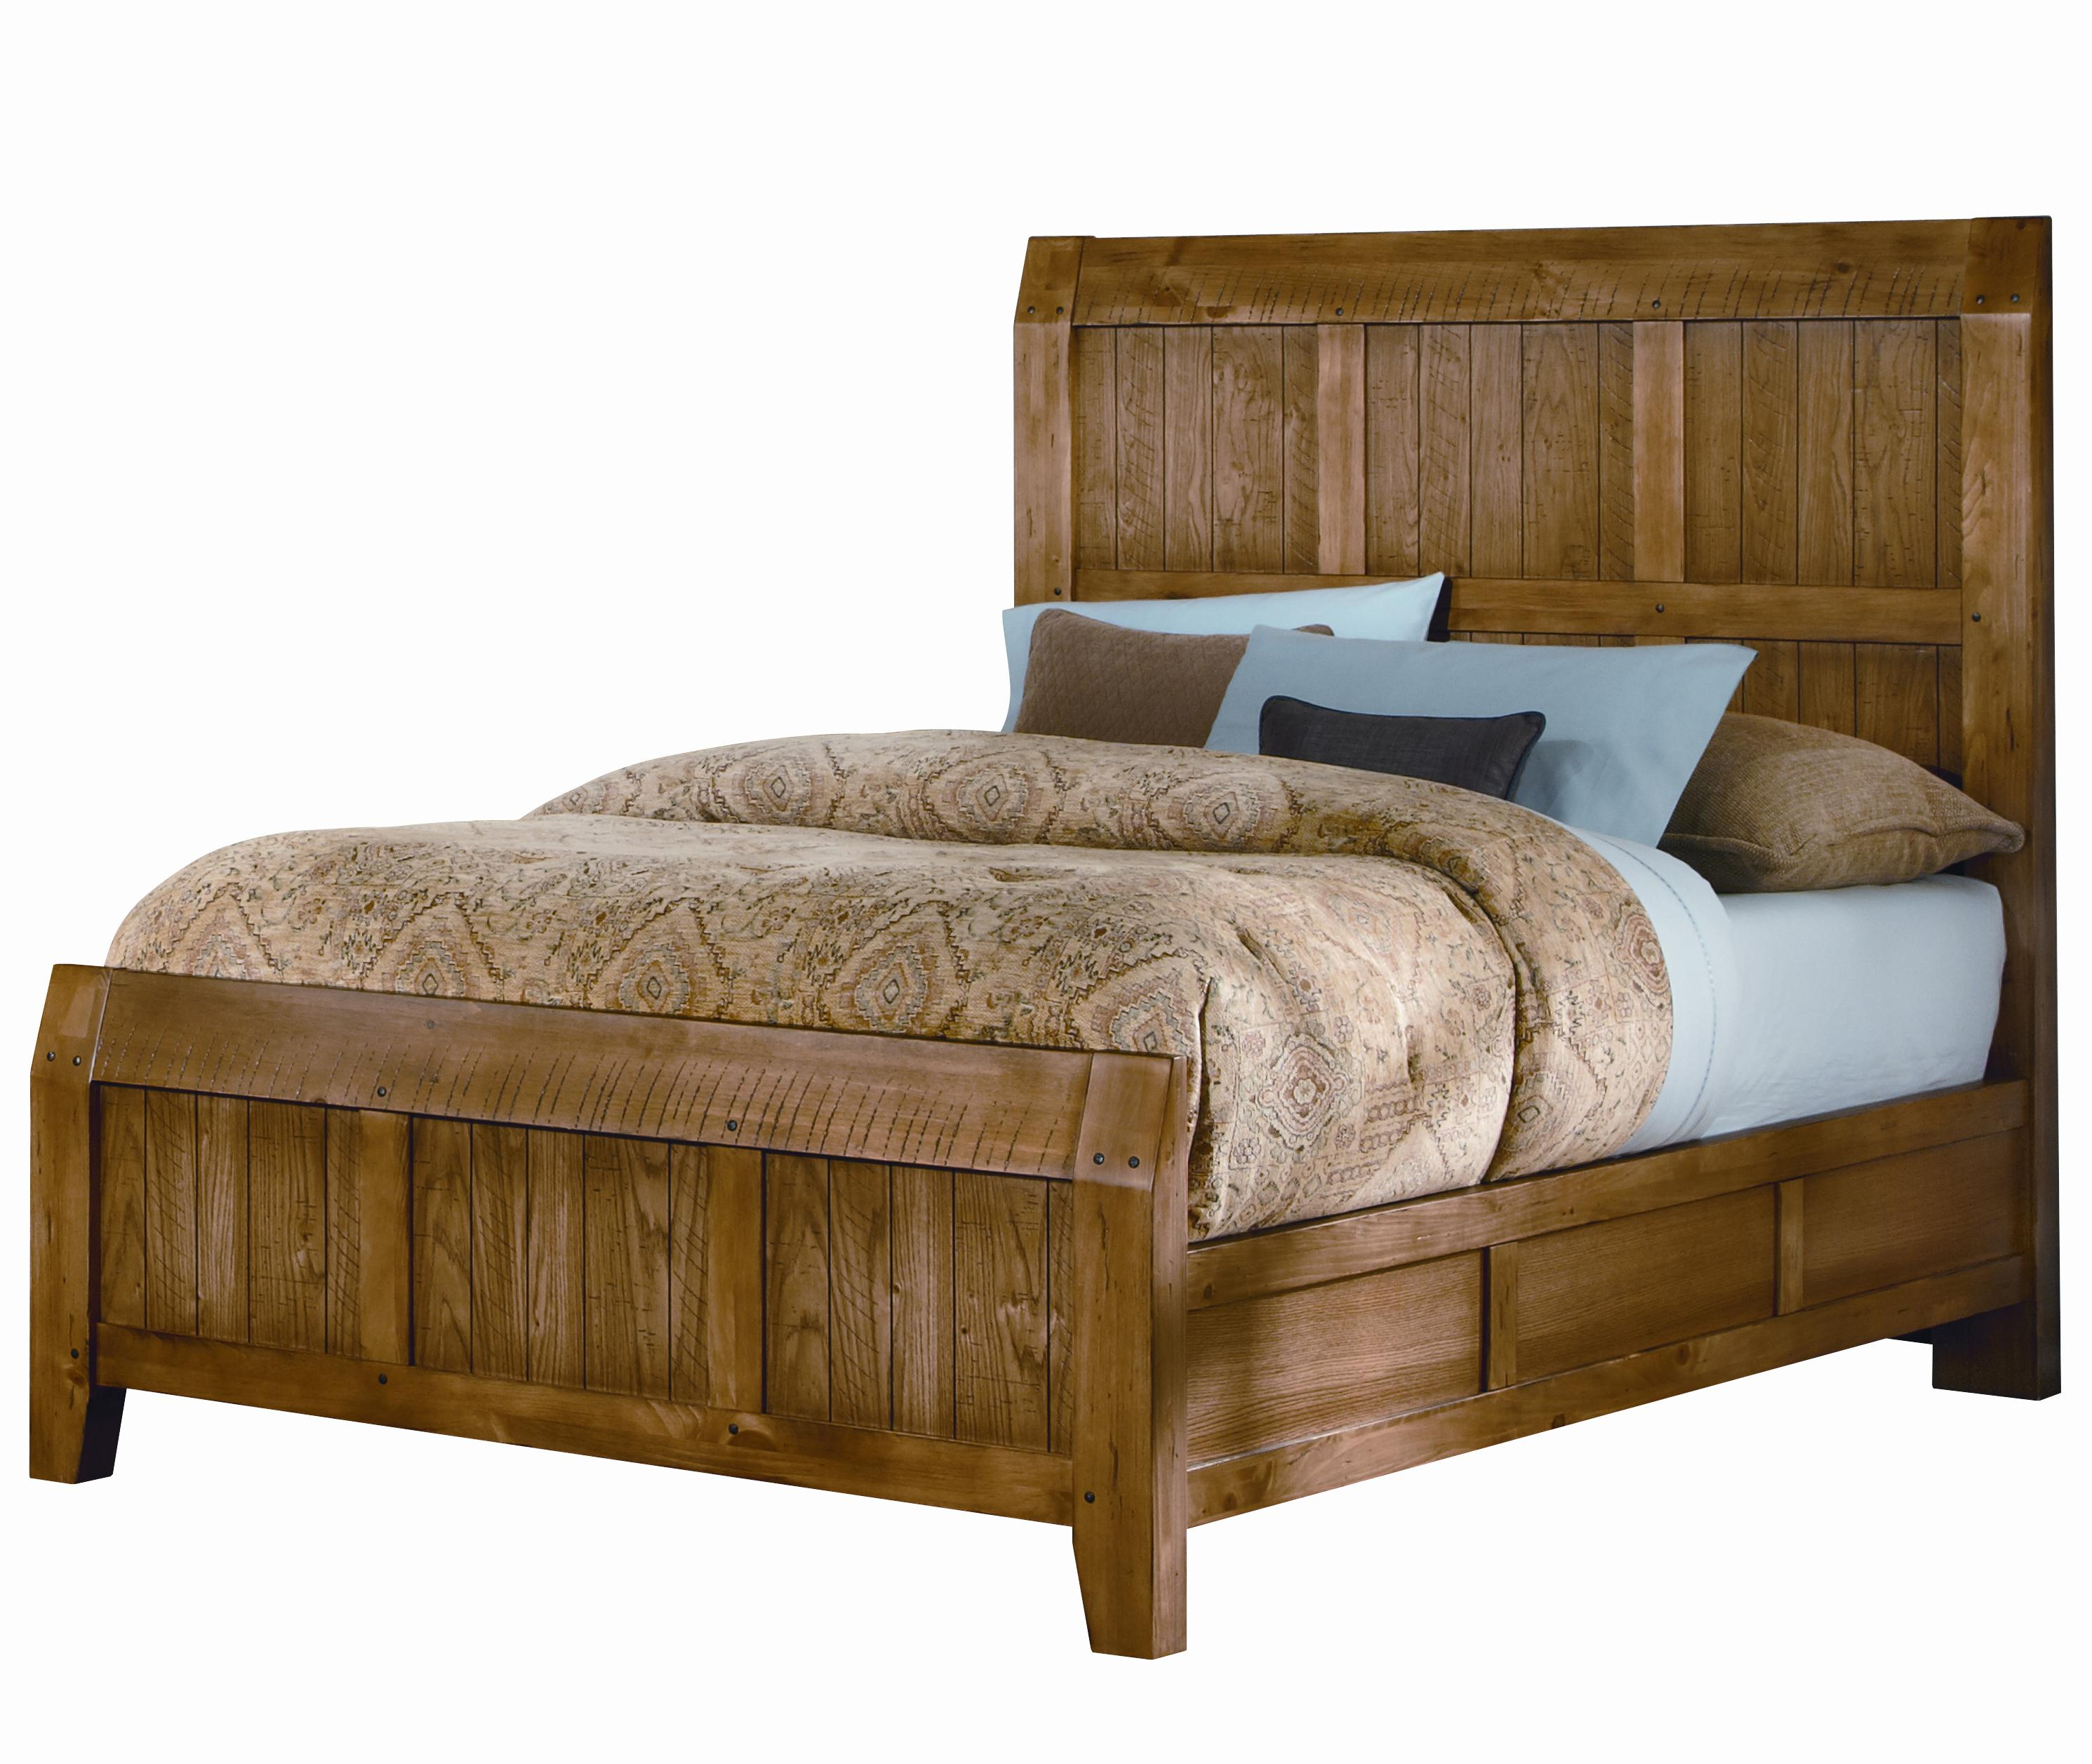 Vaughan Bassett Timber Mill King Timber Bed - Item Number: 669966722MS1